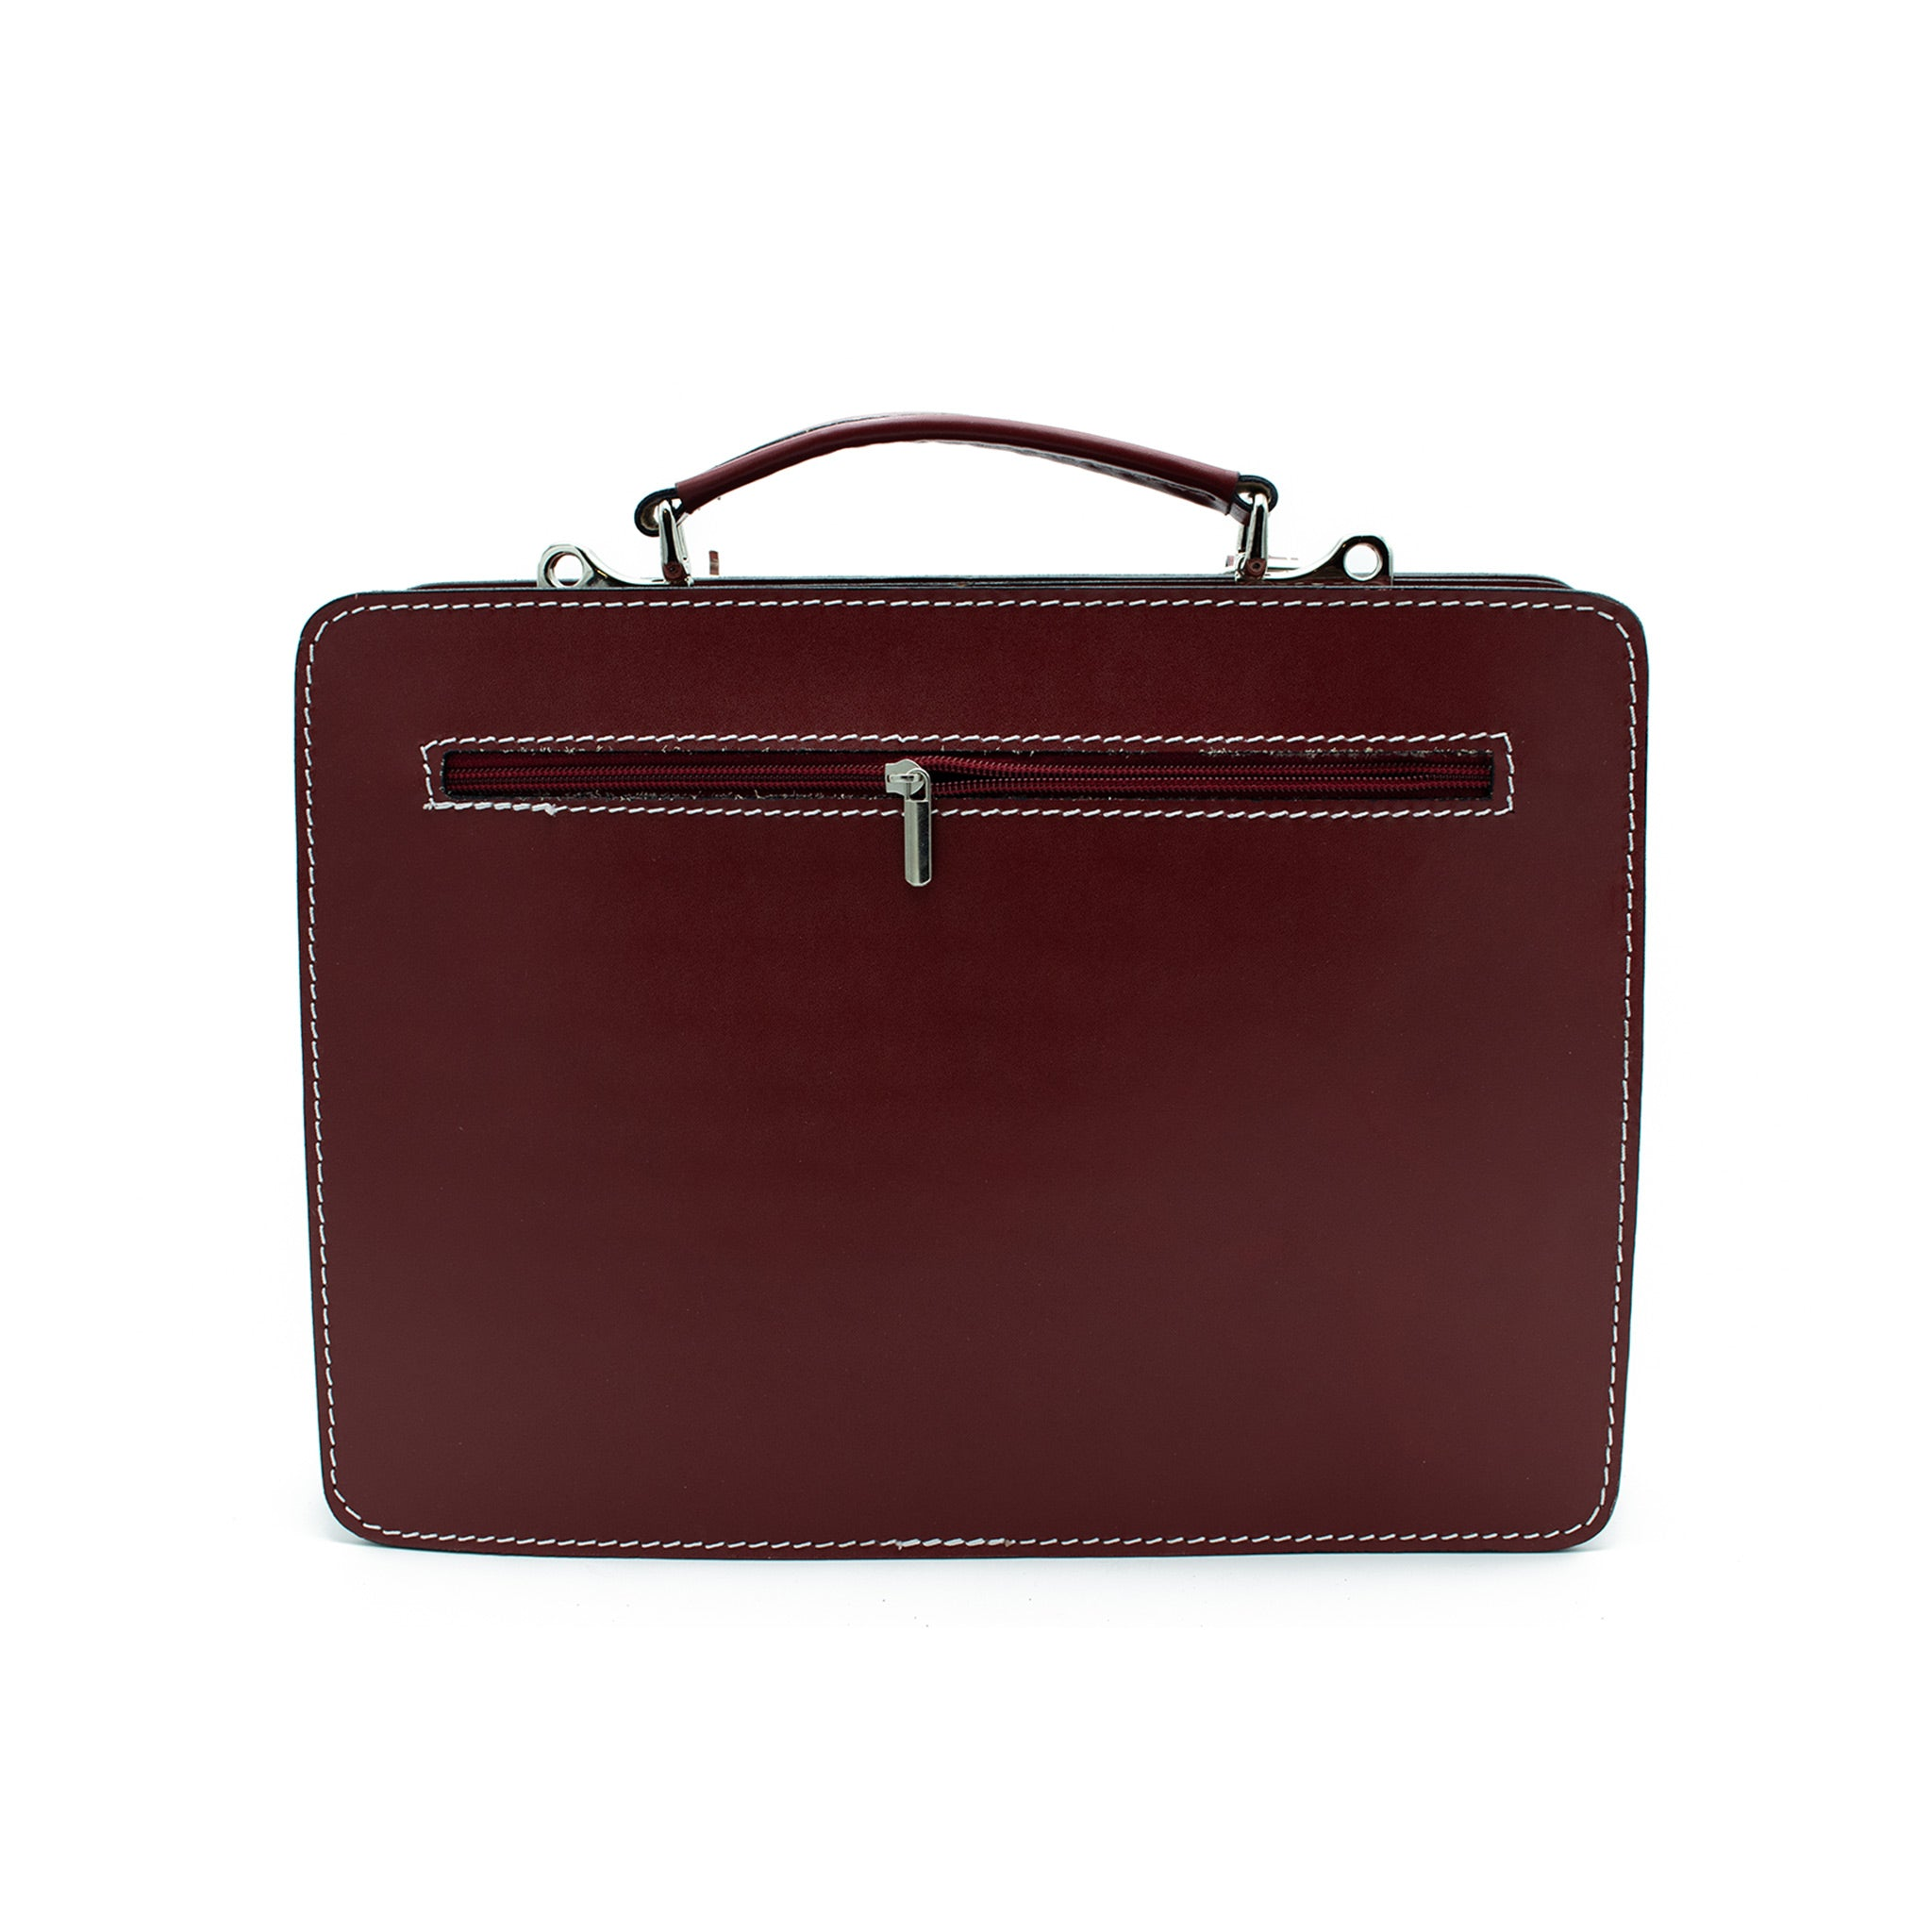 The Selma Leather Handbag